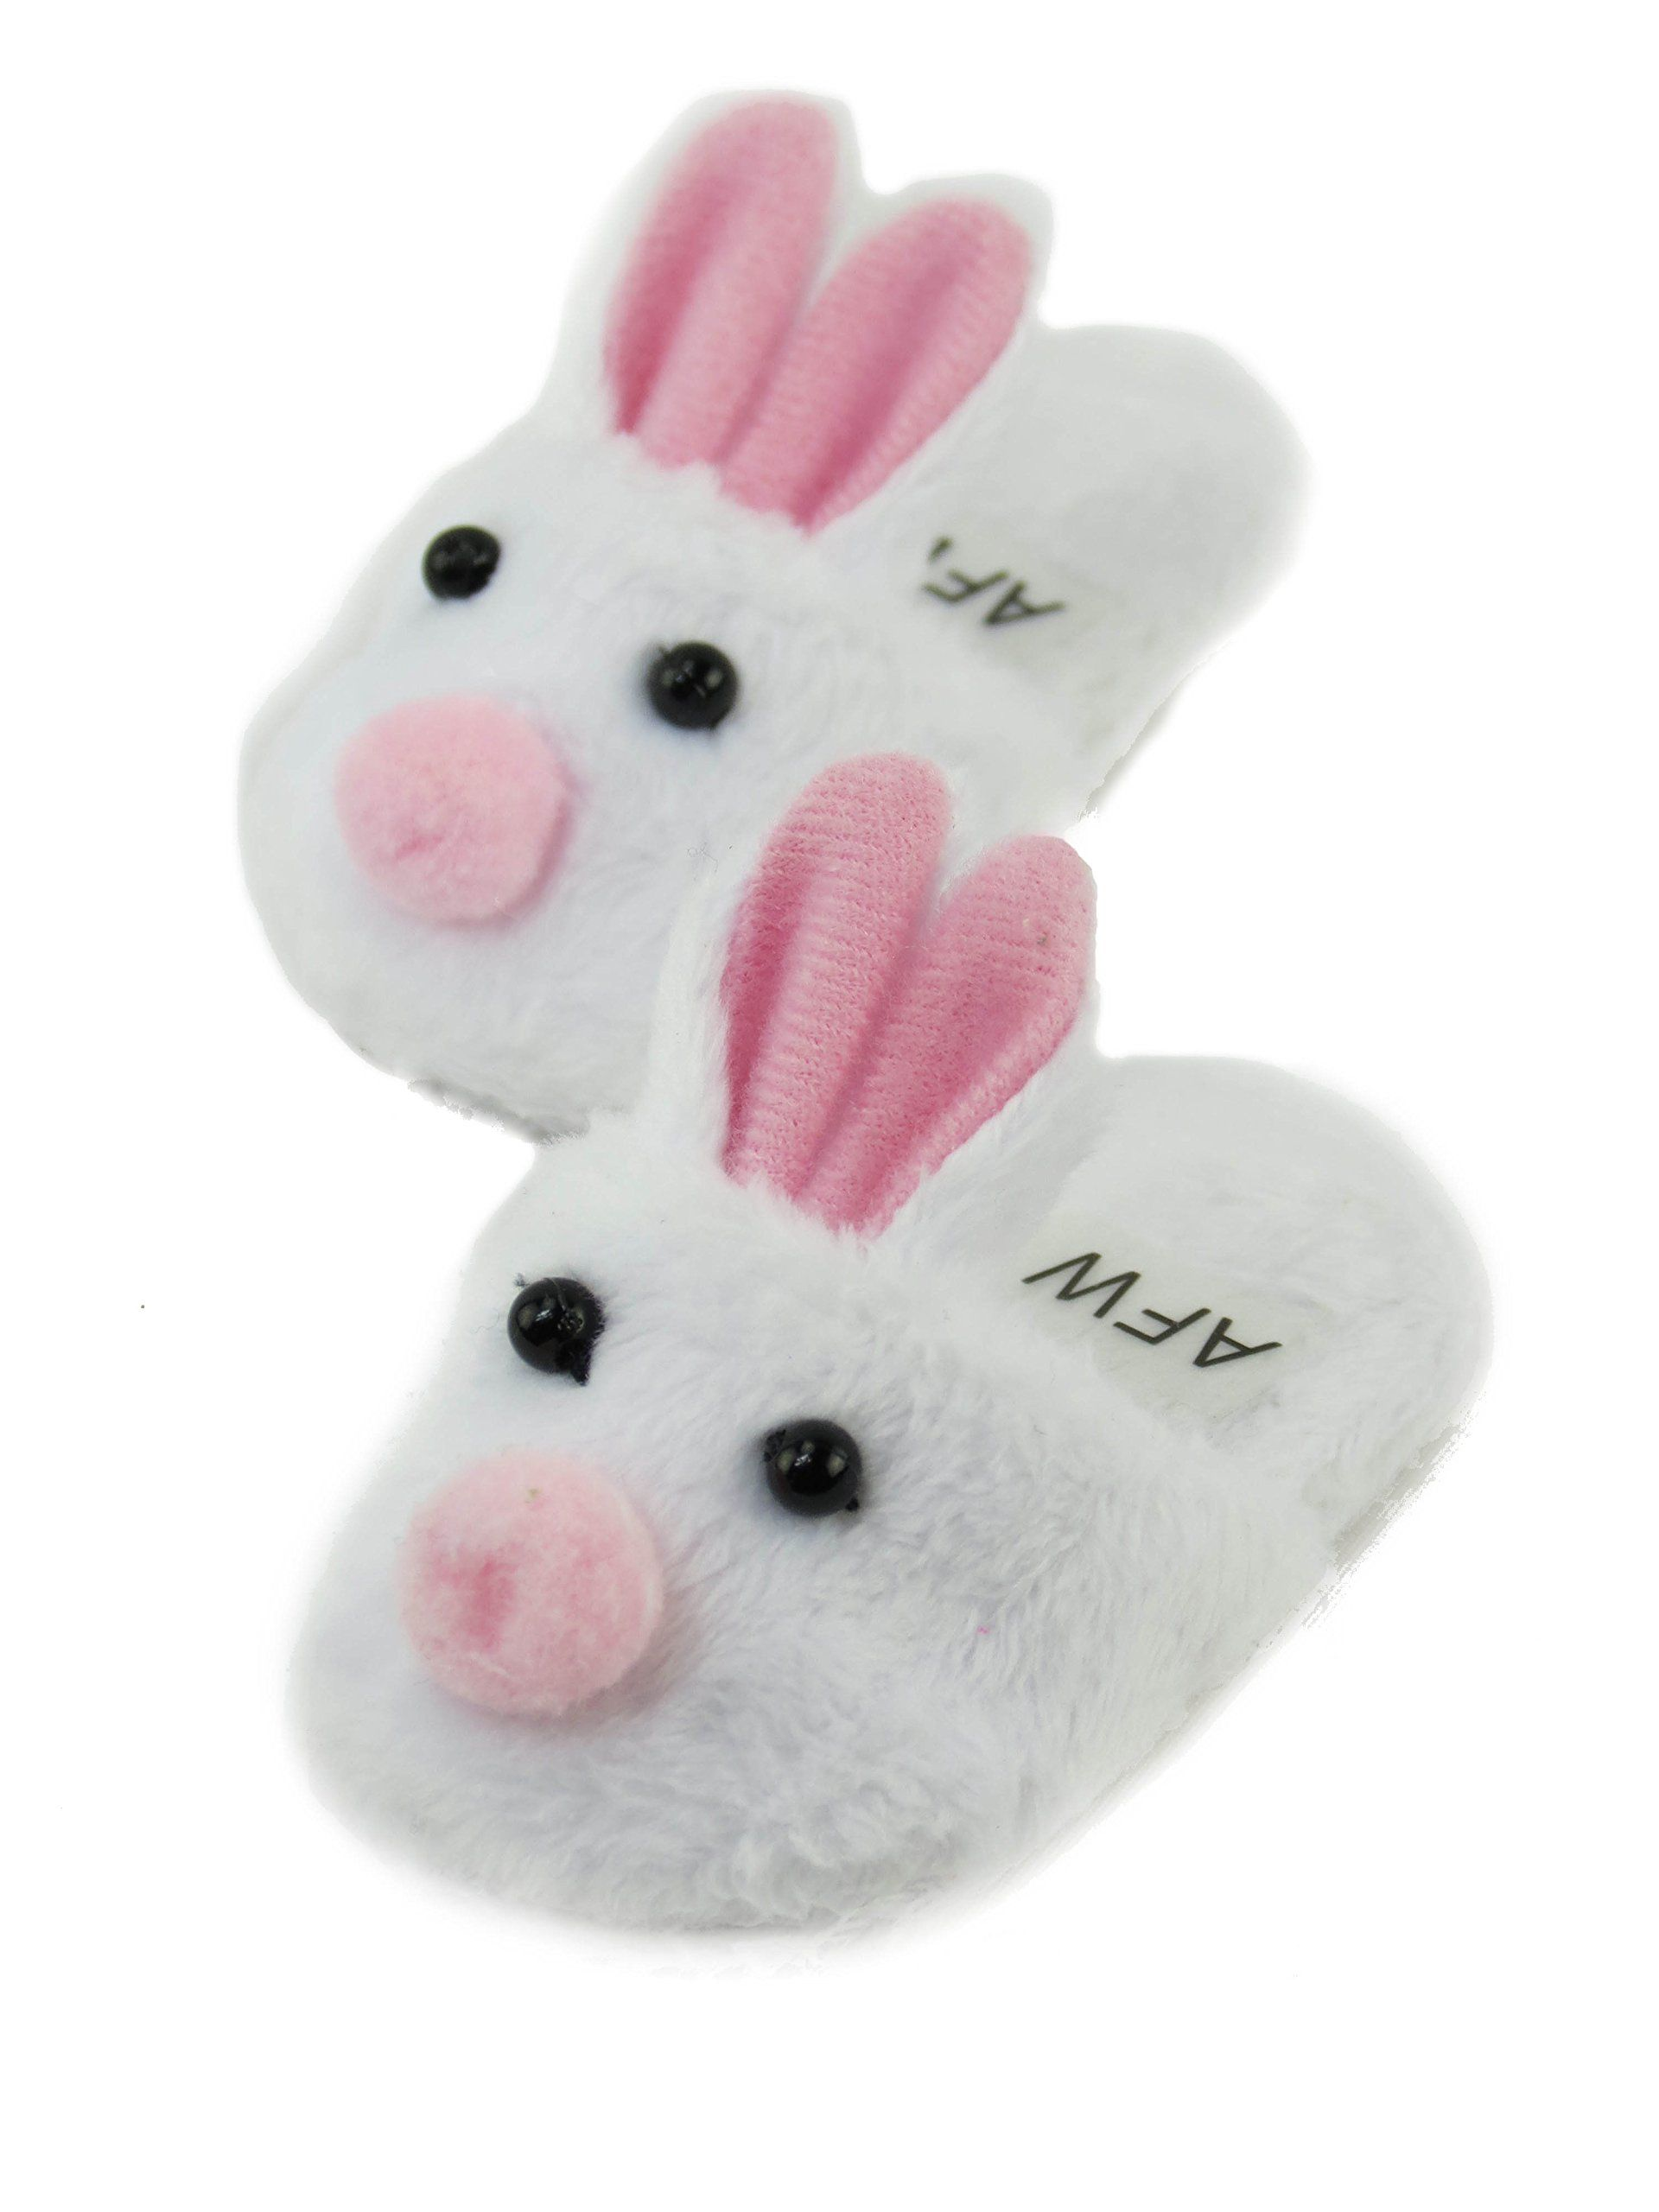 d60ba90bf234 Cute White Bunny Slippers with Pink Ears